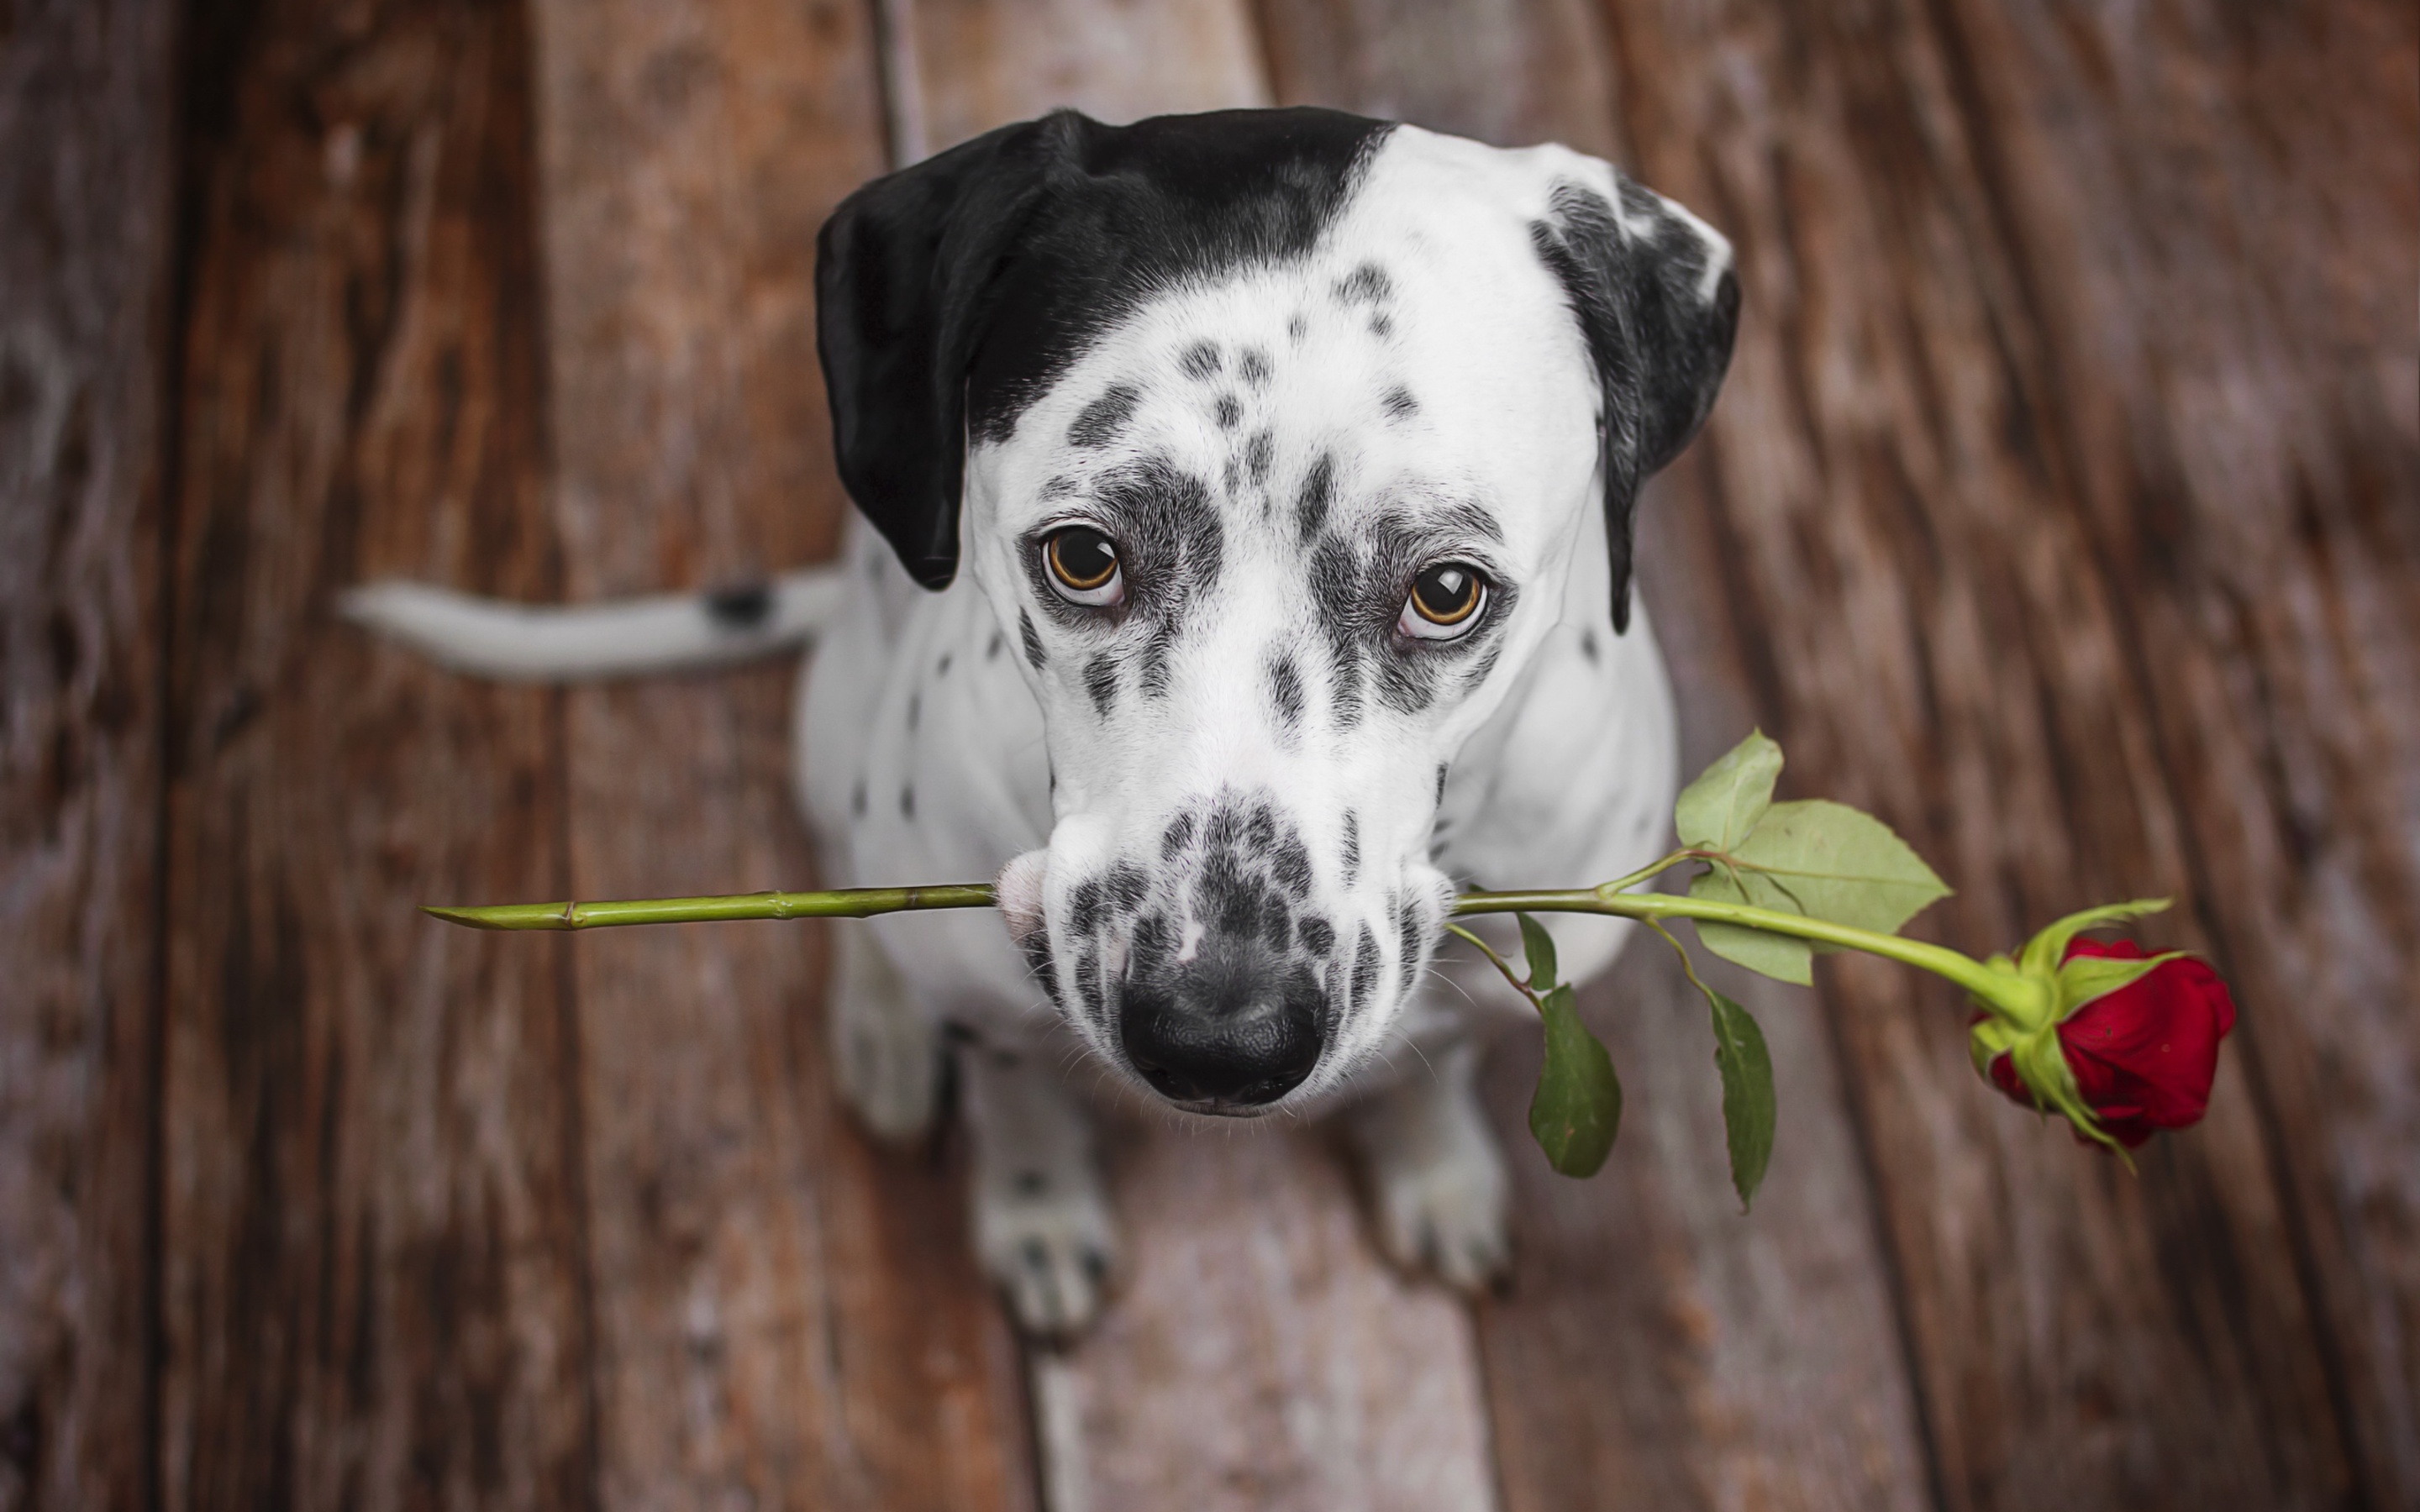 Wonderful Wallpaper Macbook Dog - dalmatian-dog-holding-red-flower-in-the-mouth-uh-2880x1800  2018_74657.jpg